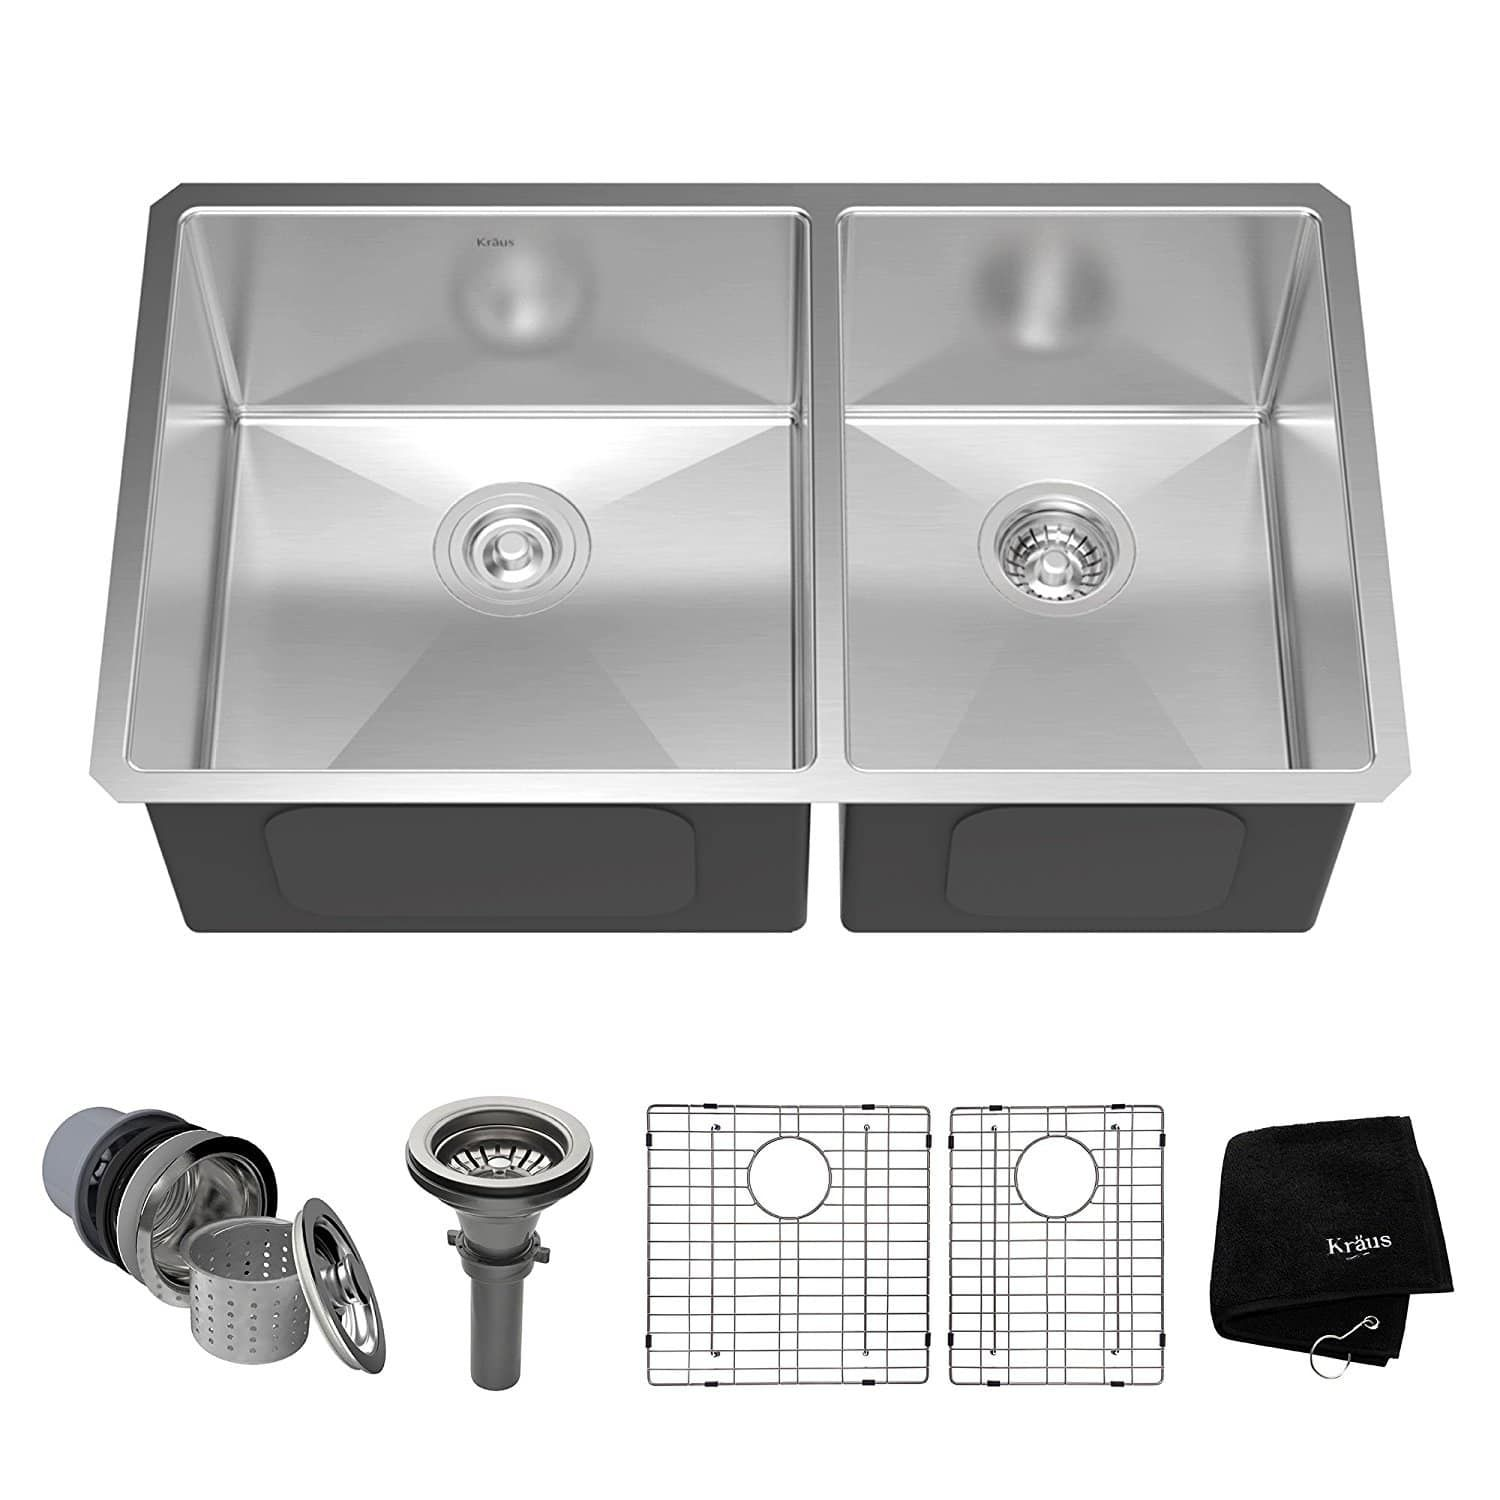 16 Gauge Regency Two Compartment Stainless Steel Commercial Sink With 2 Drainboards 72 Outdoor Kitchen Appliances Kitchen Sink Design Outdoor Kitchen Design